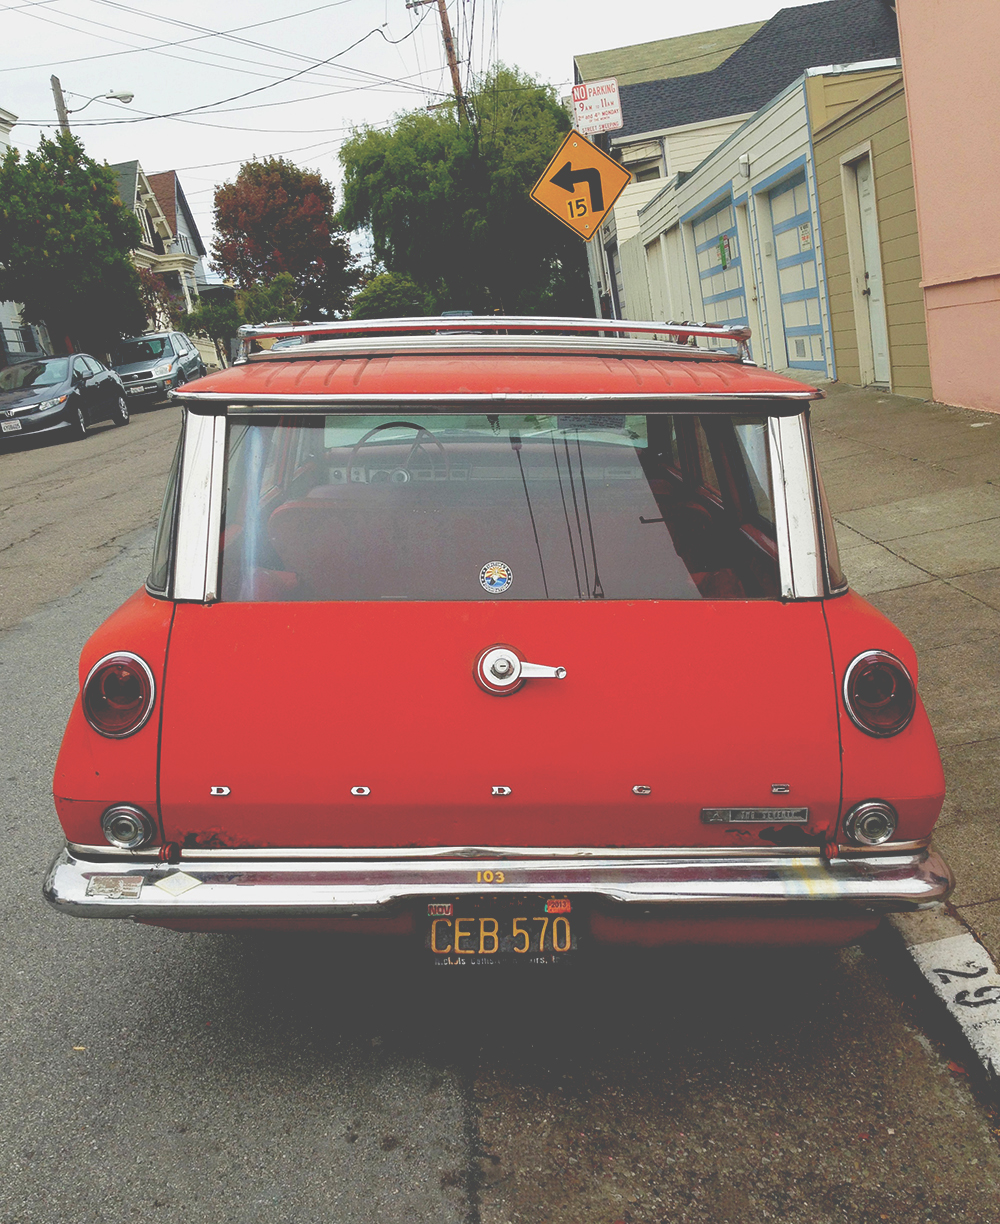 Dodge Dart | San Francisco | Girl Goes Rad